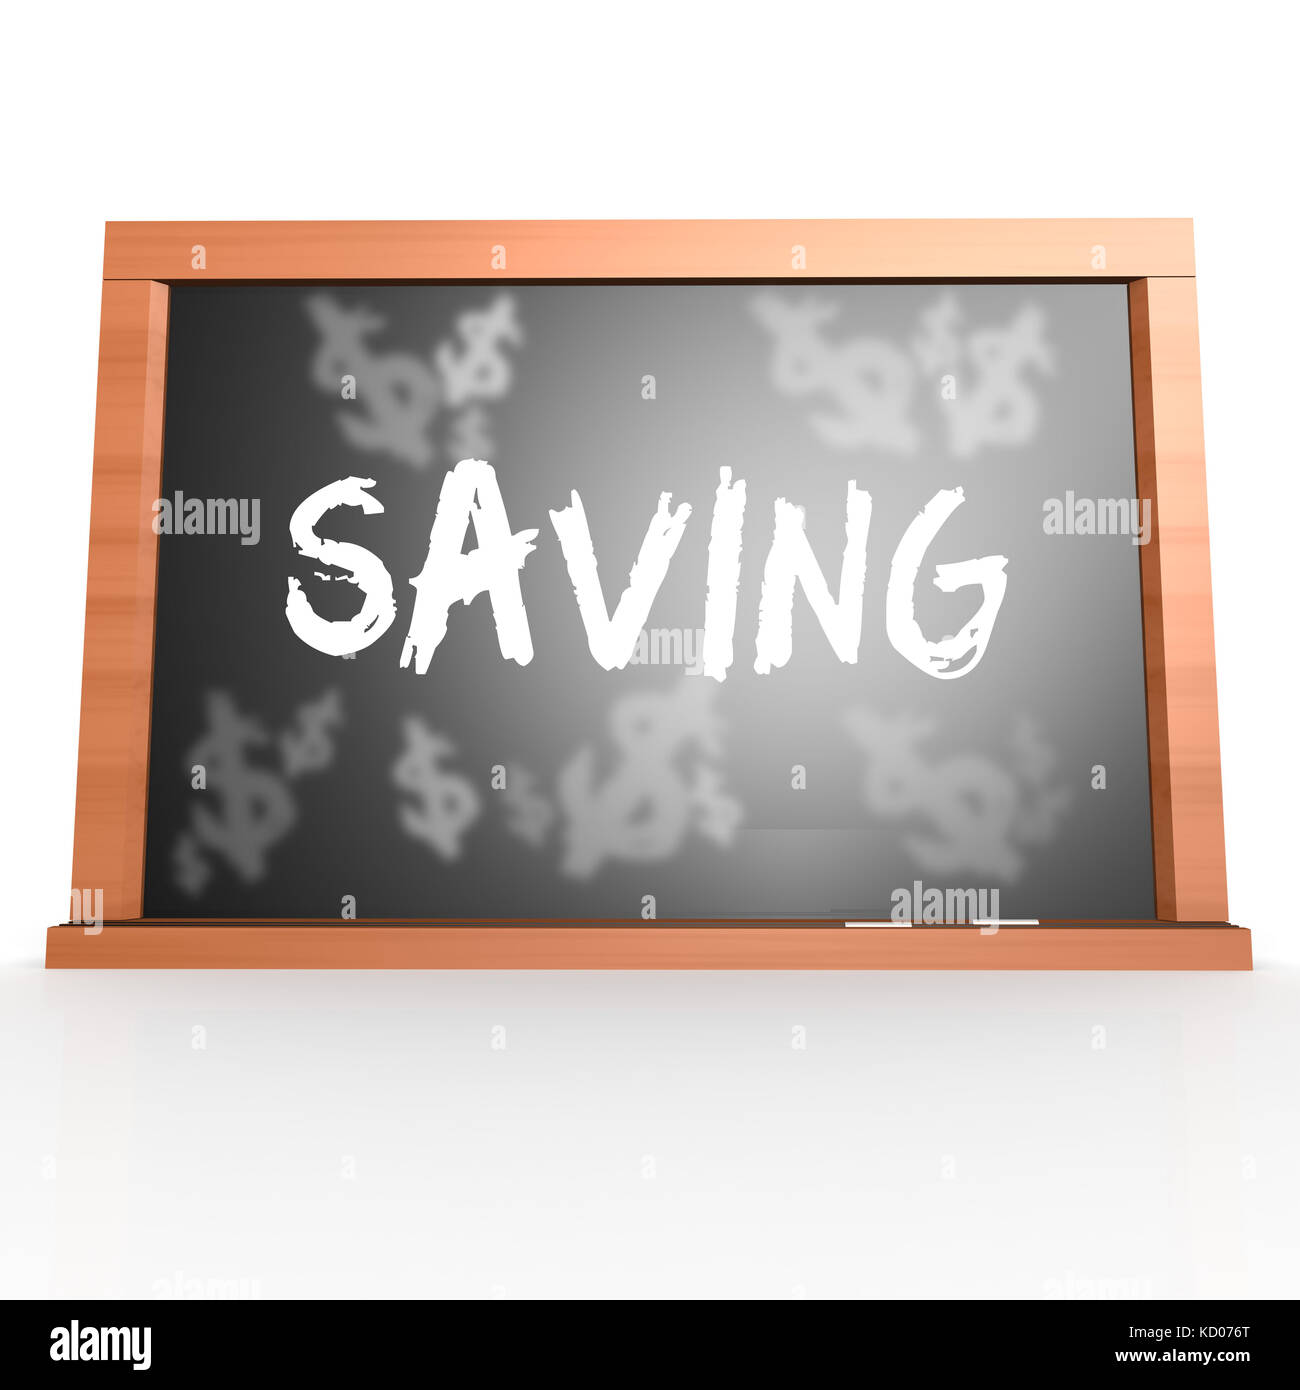 Bllack board with saving word image with hi-res rendered artwork that could be used for any graphic design. - Stock Image